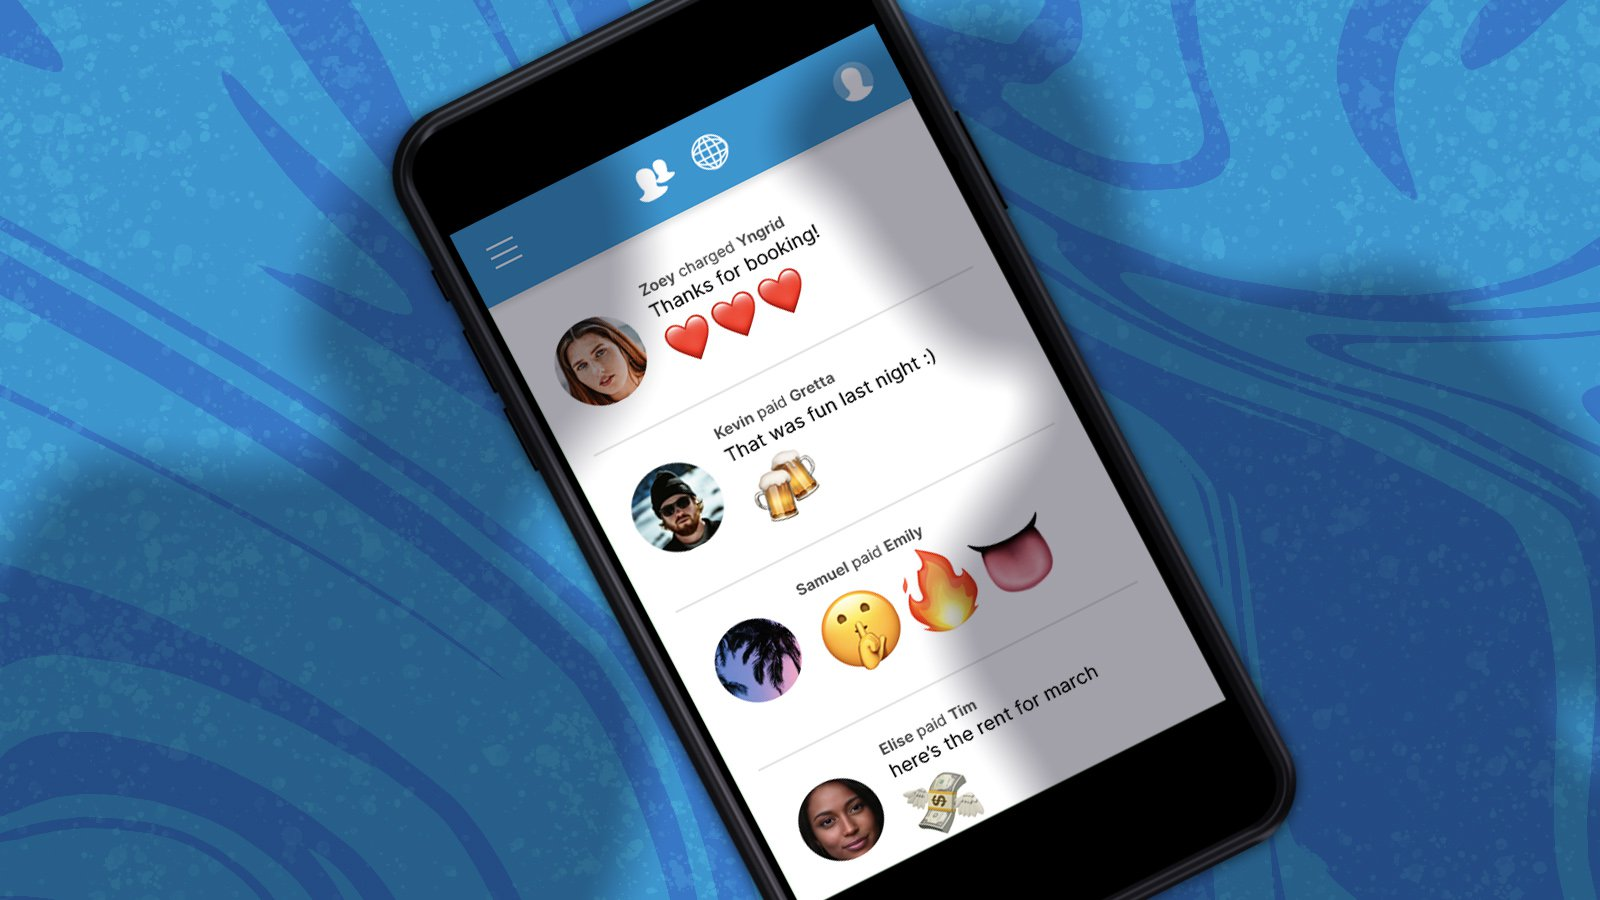 Image of a mobile phone with Venmo's app that is displaying different public transactions. There are 2 shadows representing figures viewing a users public information.